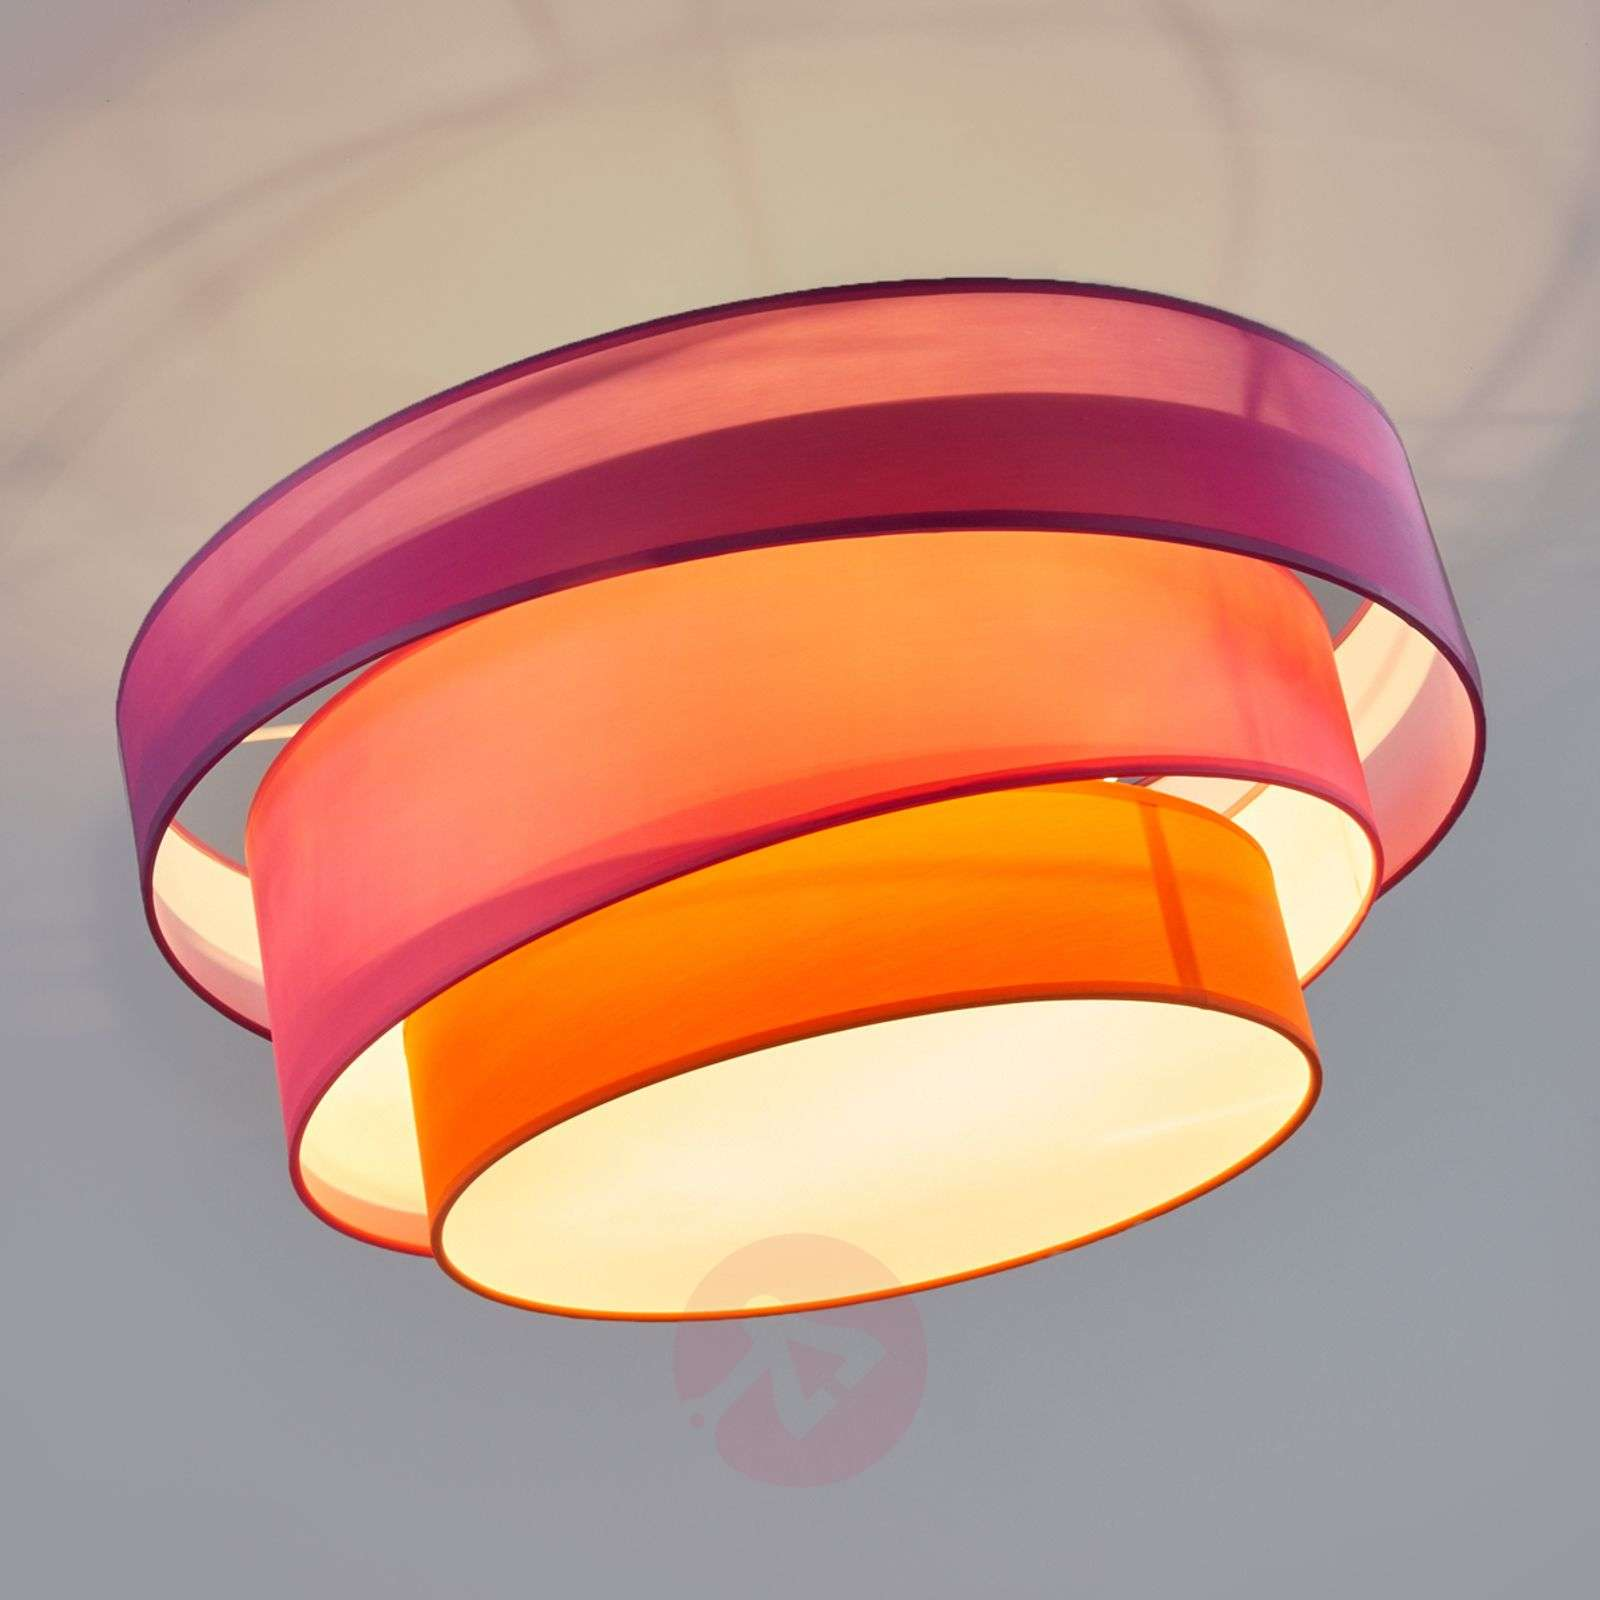 Three coloured ceiling light melia violet pink lights three coloured ceiling light melia violet and pink 9639035 01 aloadofball Image collections